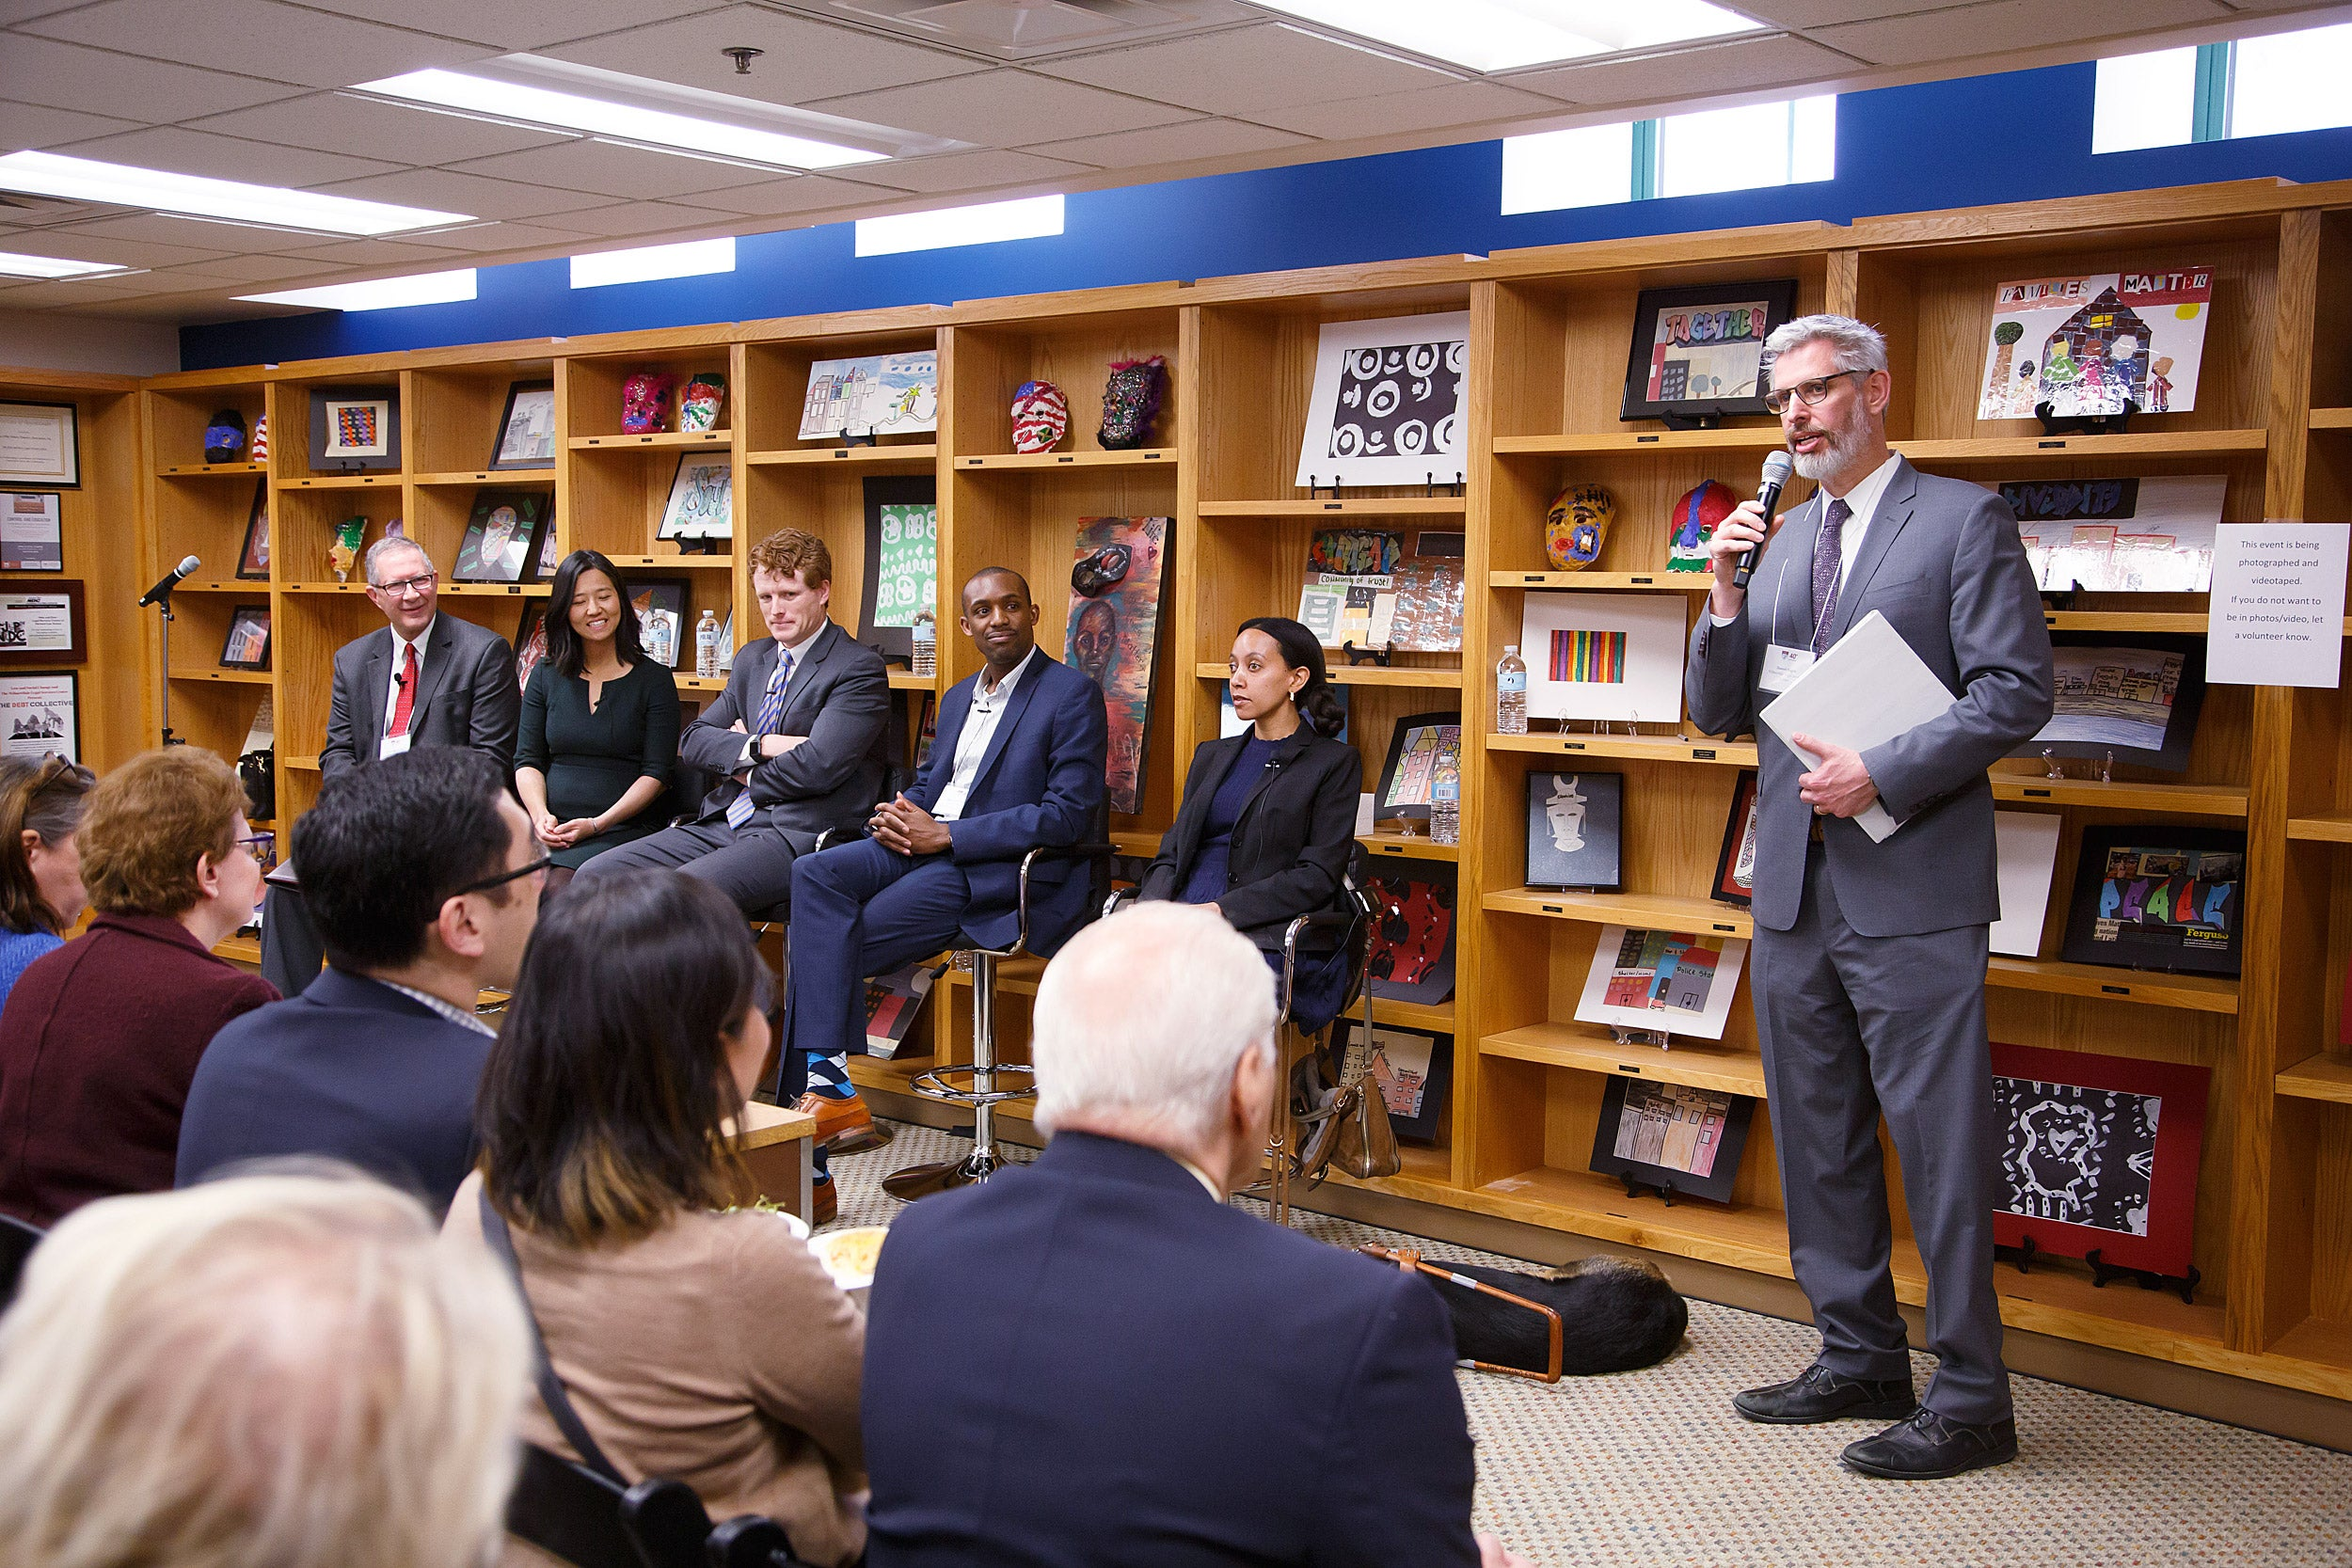 Legal Services Center Faculty Director Daniel Nagin speaks on a panel with LSC Tax Clinic Director Keith Fogg, Boston City Councilor Michelle Wu, Rep. Joseph Kennedy III, ArchCity Defenders Executive Director Blake Strode, and disability rights advocate Haben Girma.